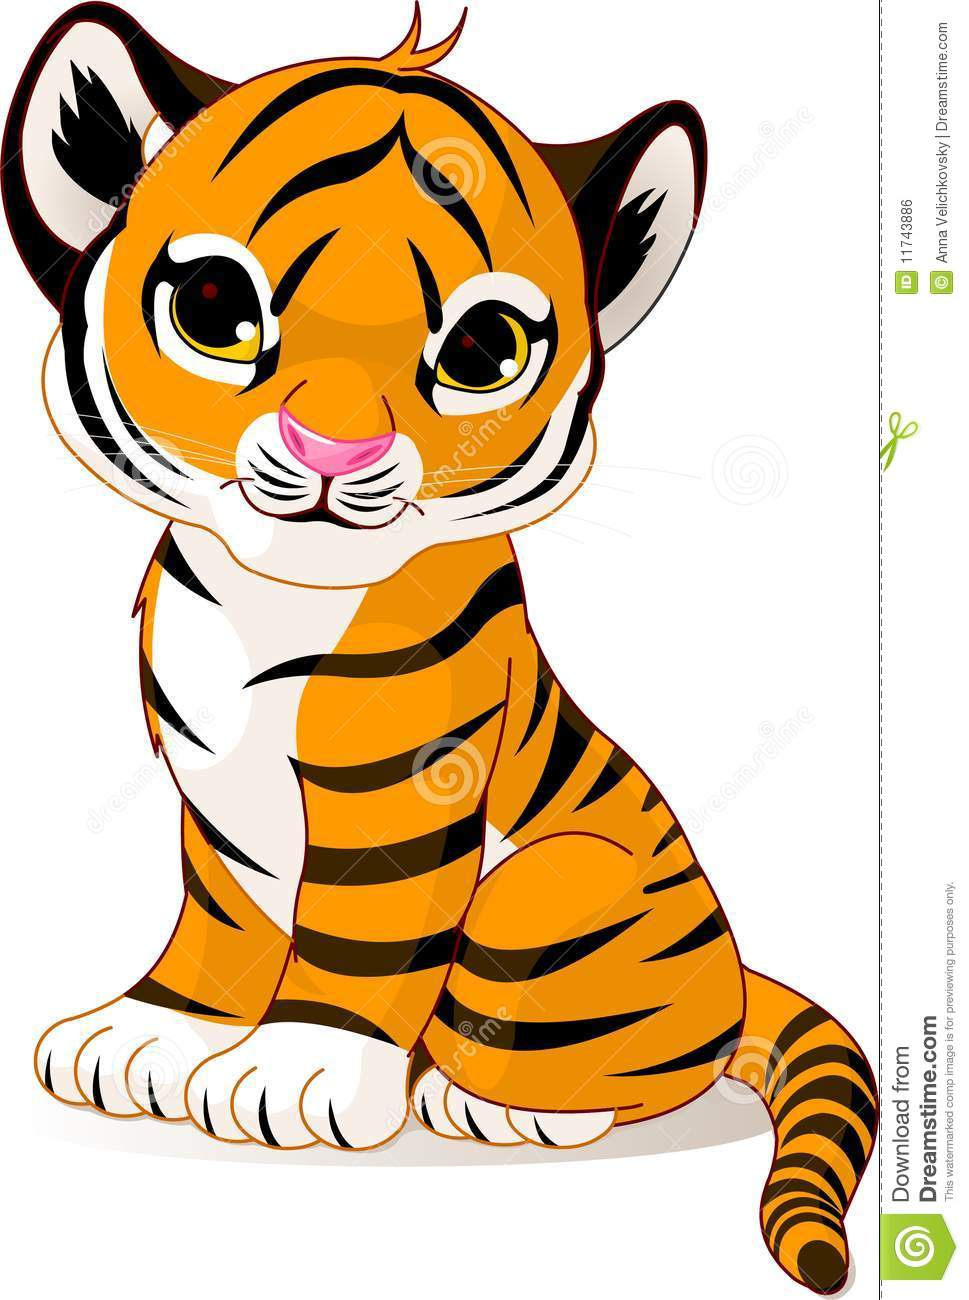 free tiger clipart at getdrawings com free for personal use free rh getdrawings com tiger clipart free black and white tiger clipart images black and white